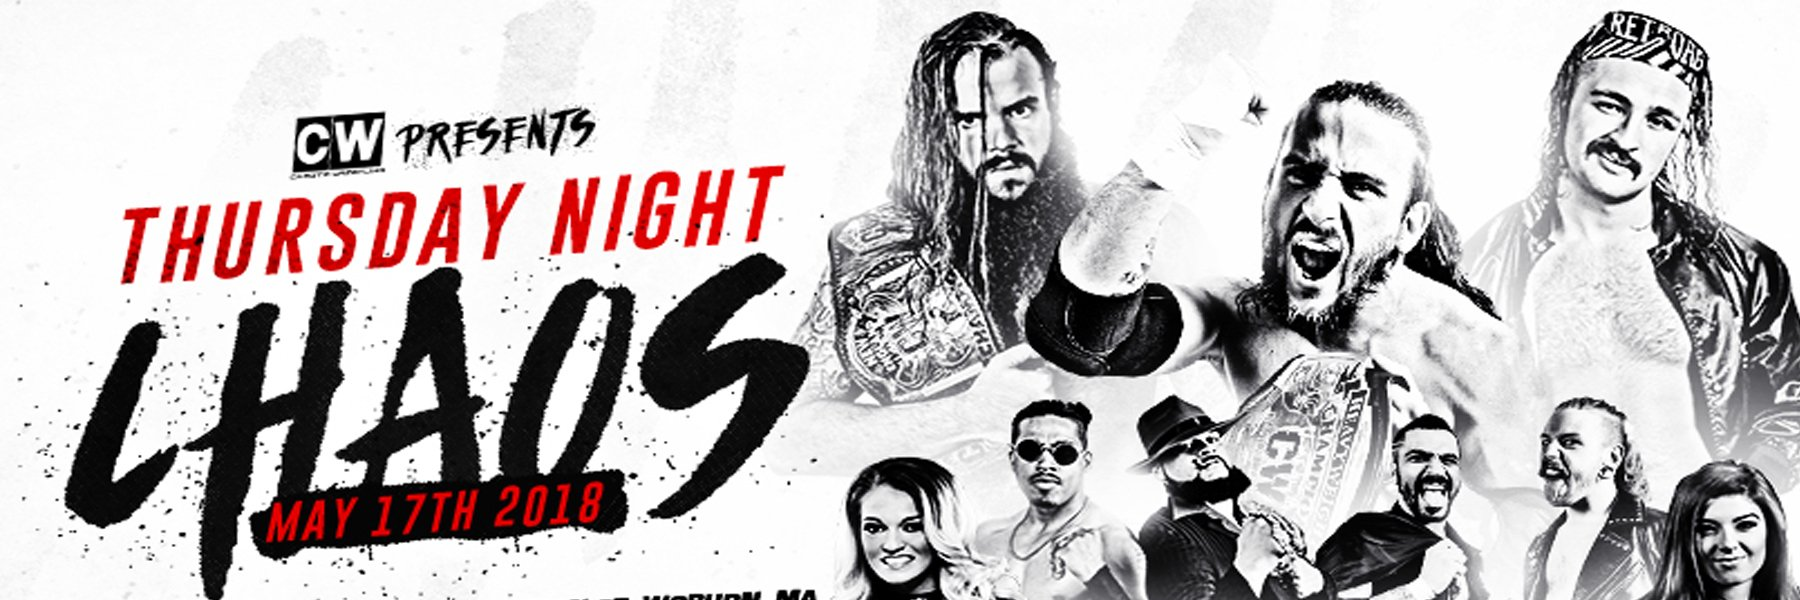 THURSDAY NIGHT CHAOS 1 - JT DUNN | JOSH BRIGGS | ANTHONY GREENE